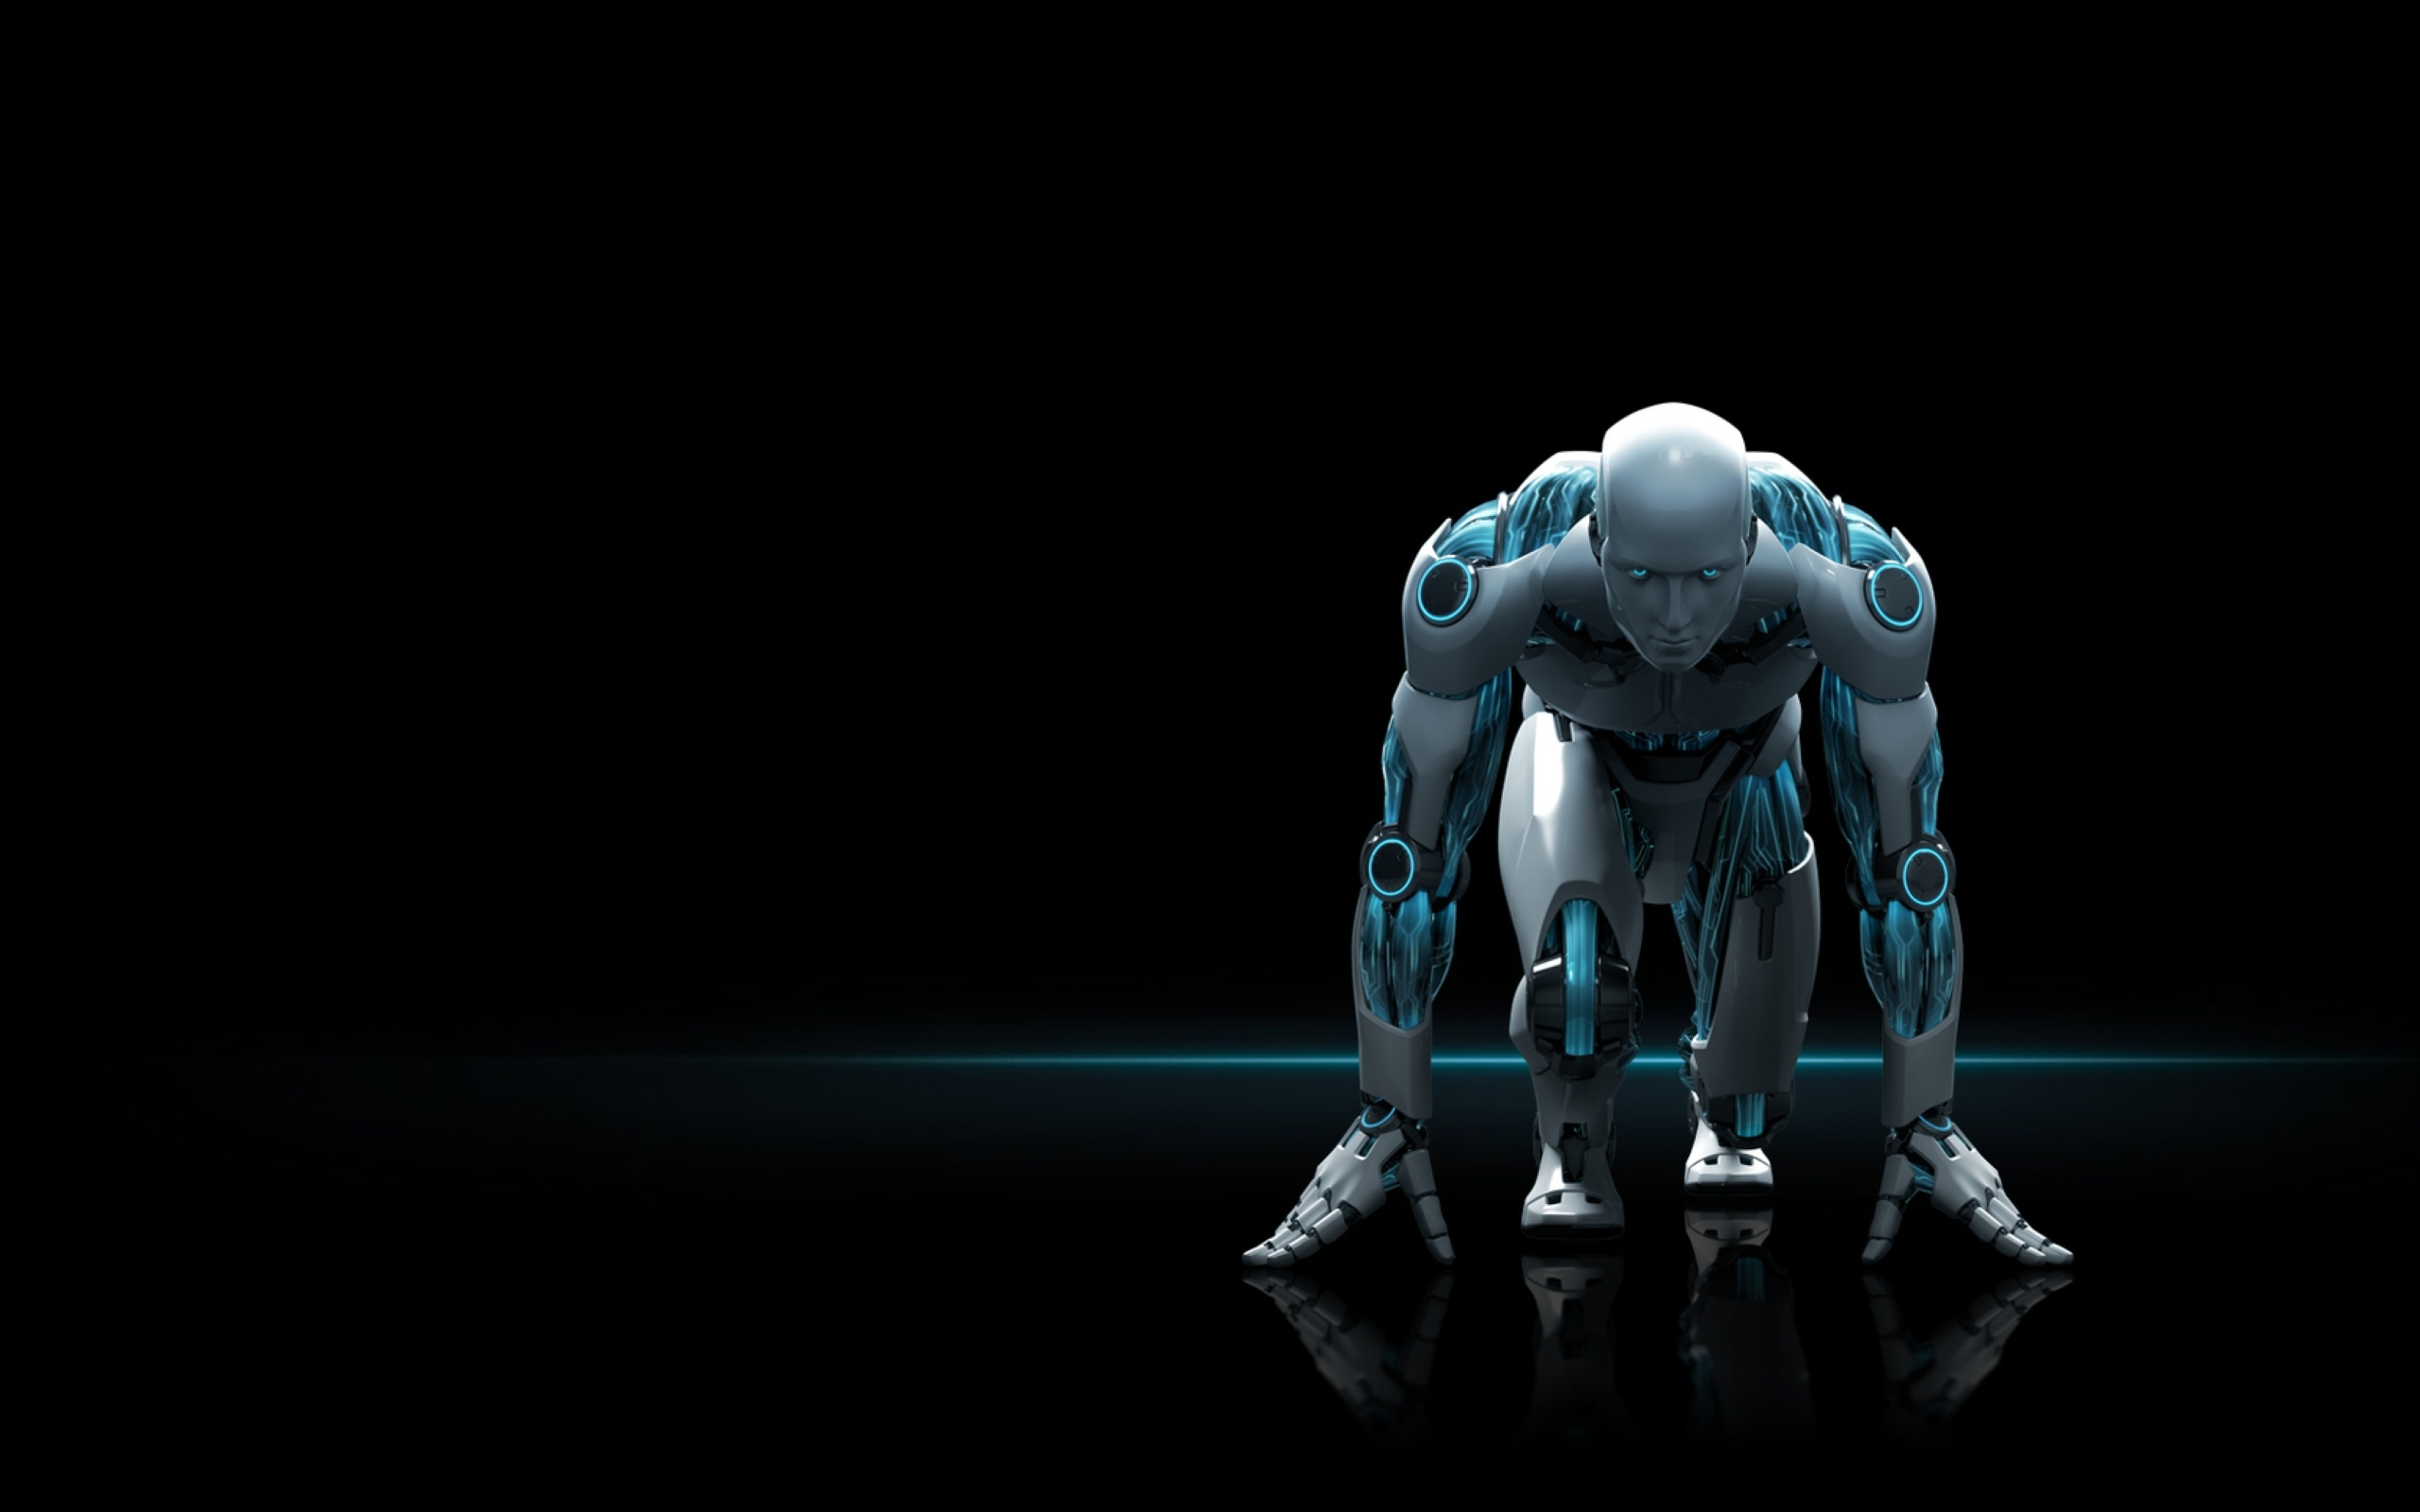 2560 x 1600 ESET NOD32 ANTIVIRUS ROBOT HD Computers,NEW,hd ...